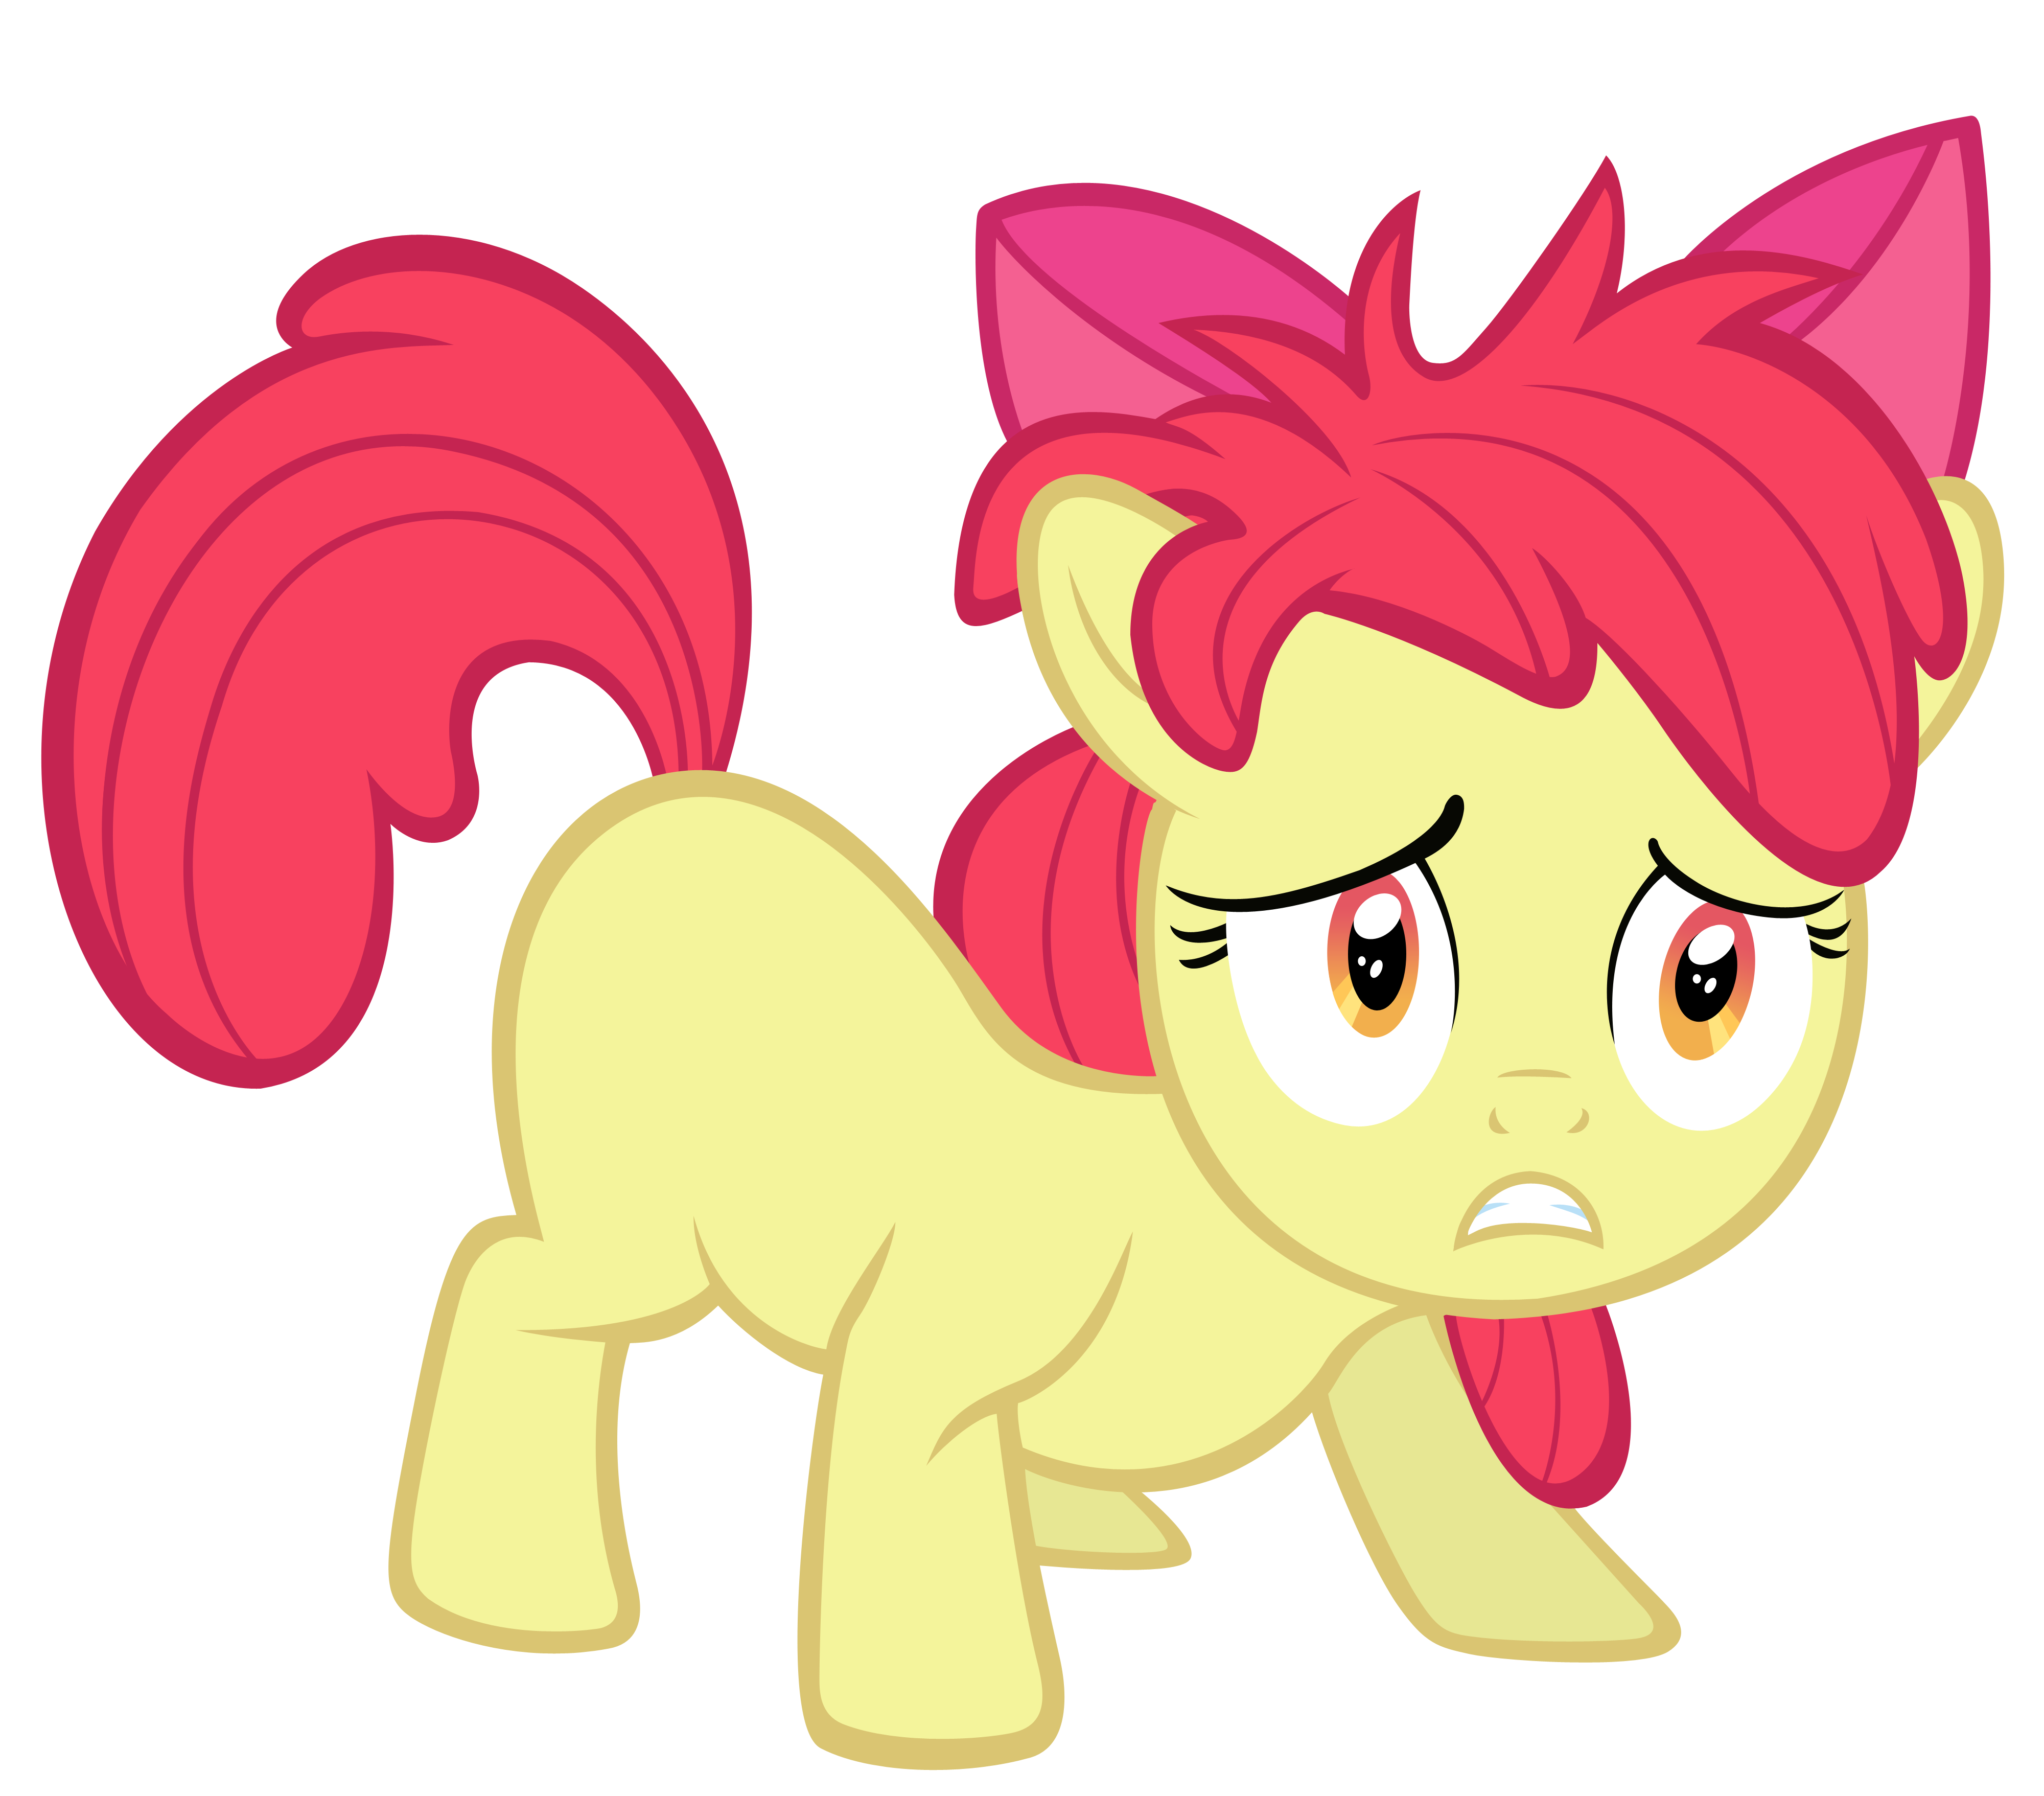 How To Draw My Little Pony Friendship Is Magic Apple Bloom